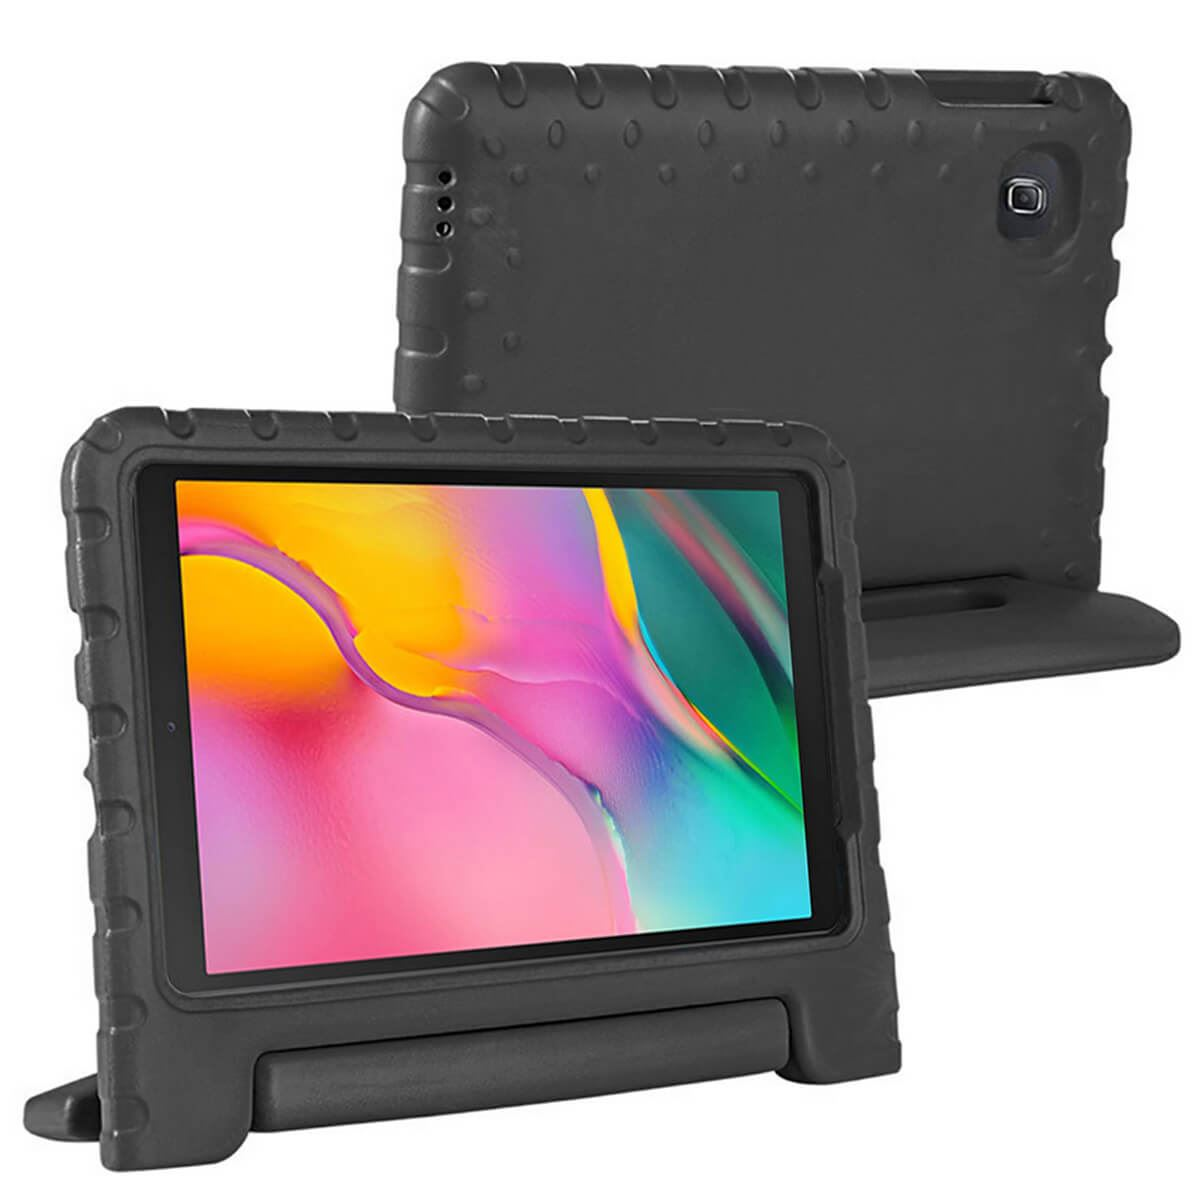 Shockproof-Protective-Case-Samsung-Galaxy-Tab-A-10-1-2016-Kids-Cover thumbnail 7